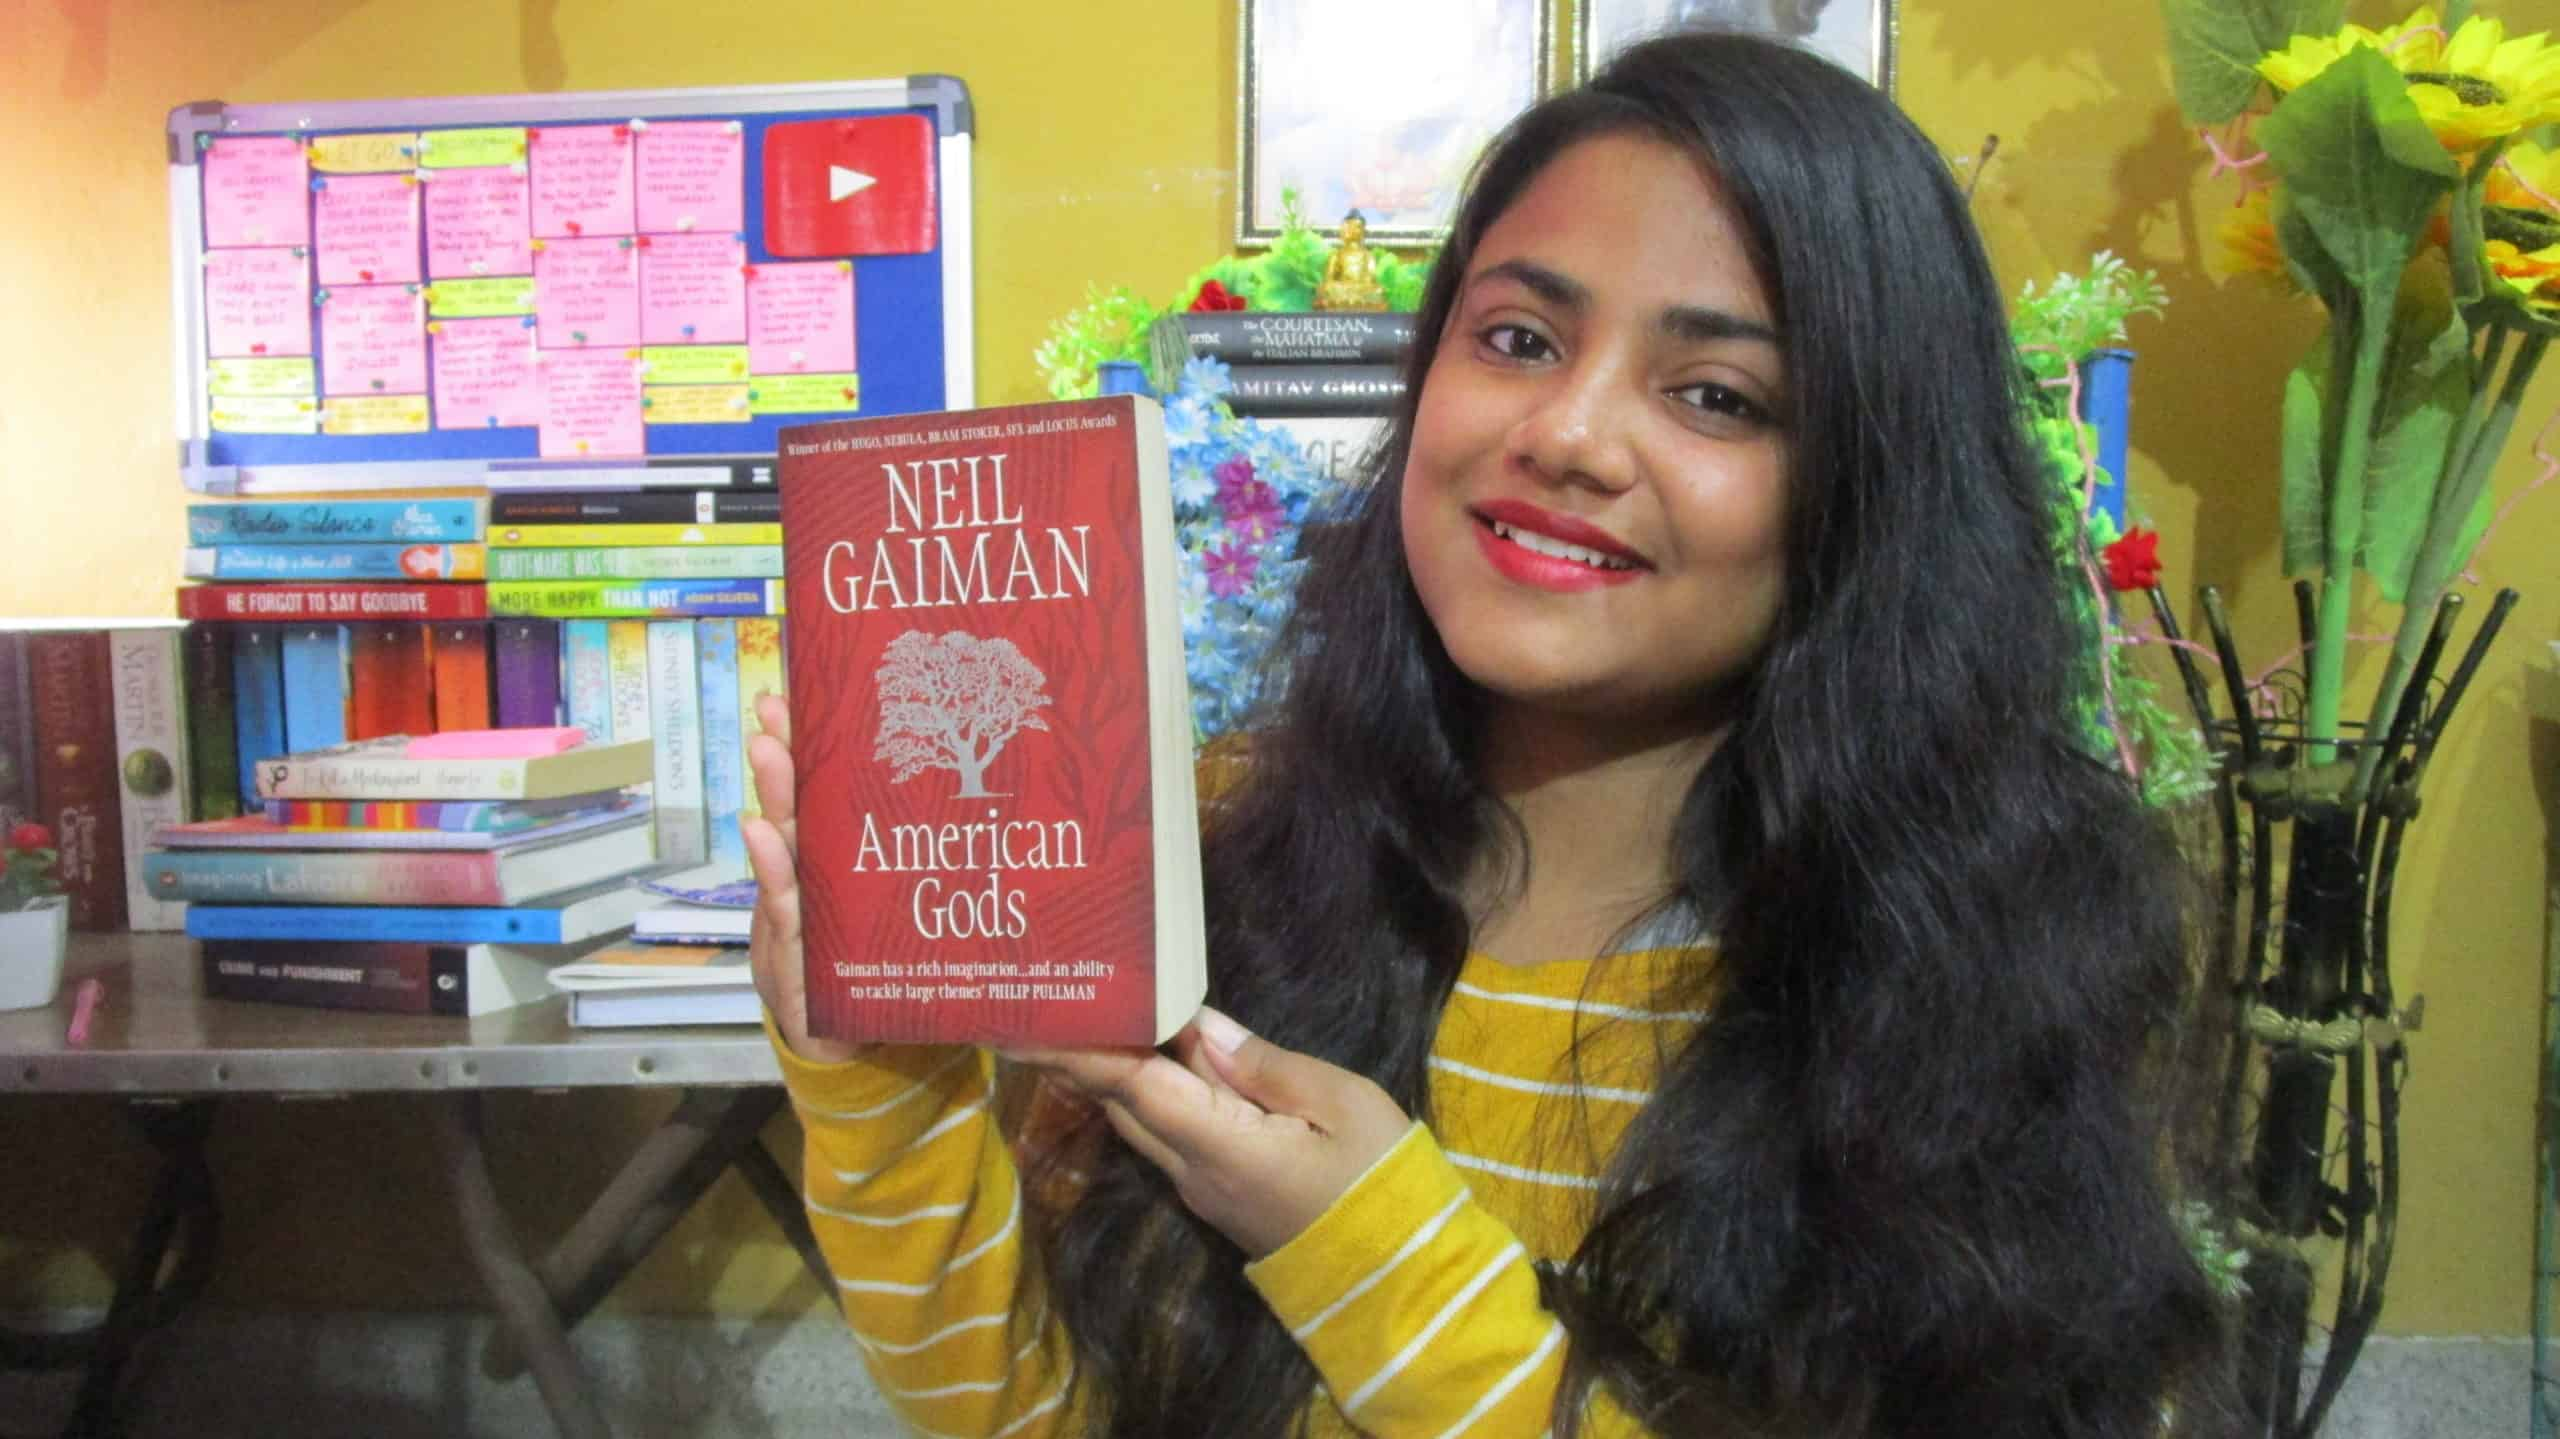 American Gods By Neil Gaiman Author Book Novel Review Rating